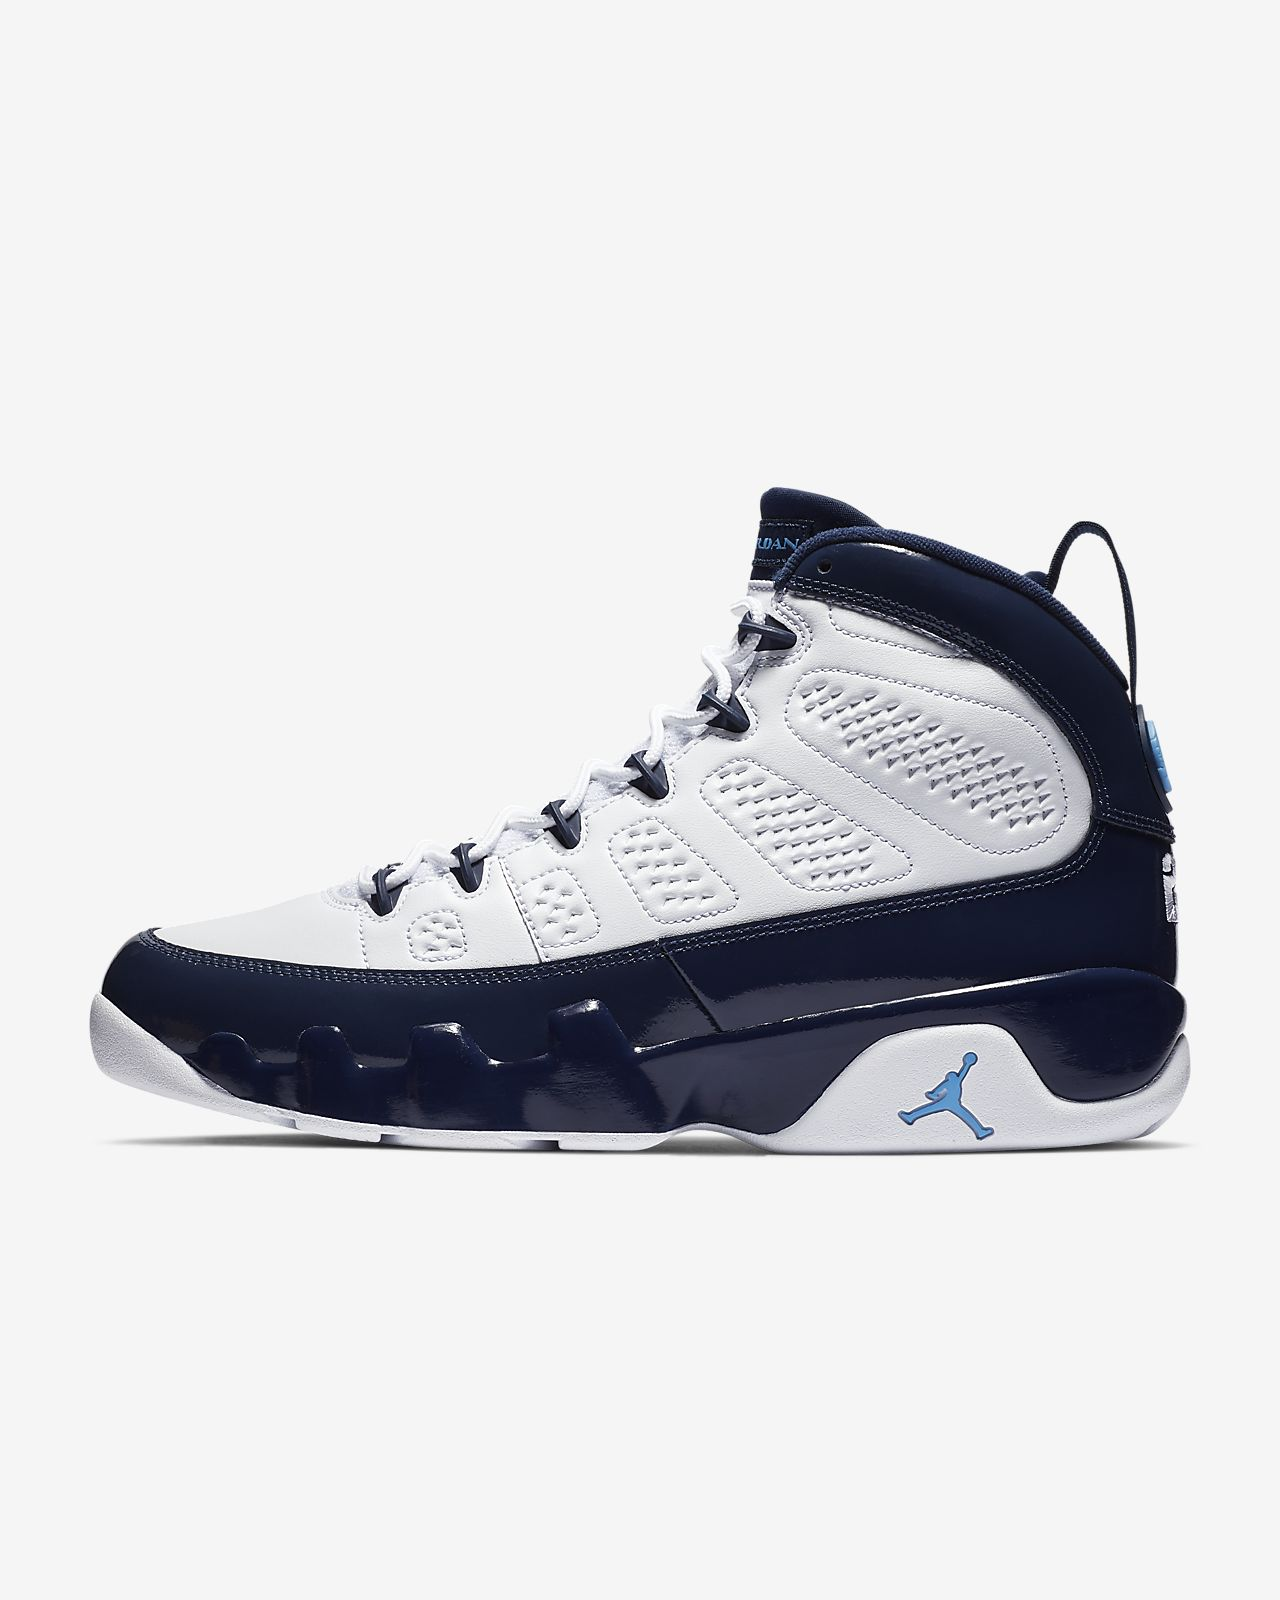 92d4f65bcf17e9 Air Jordan 9 Retro Men s Shoe. Nike.com